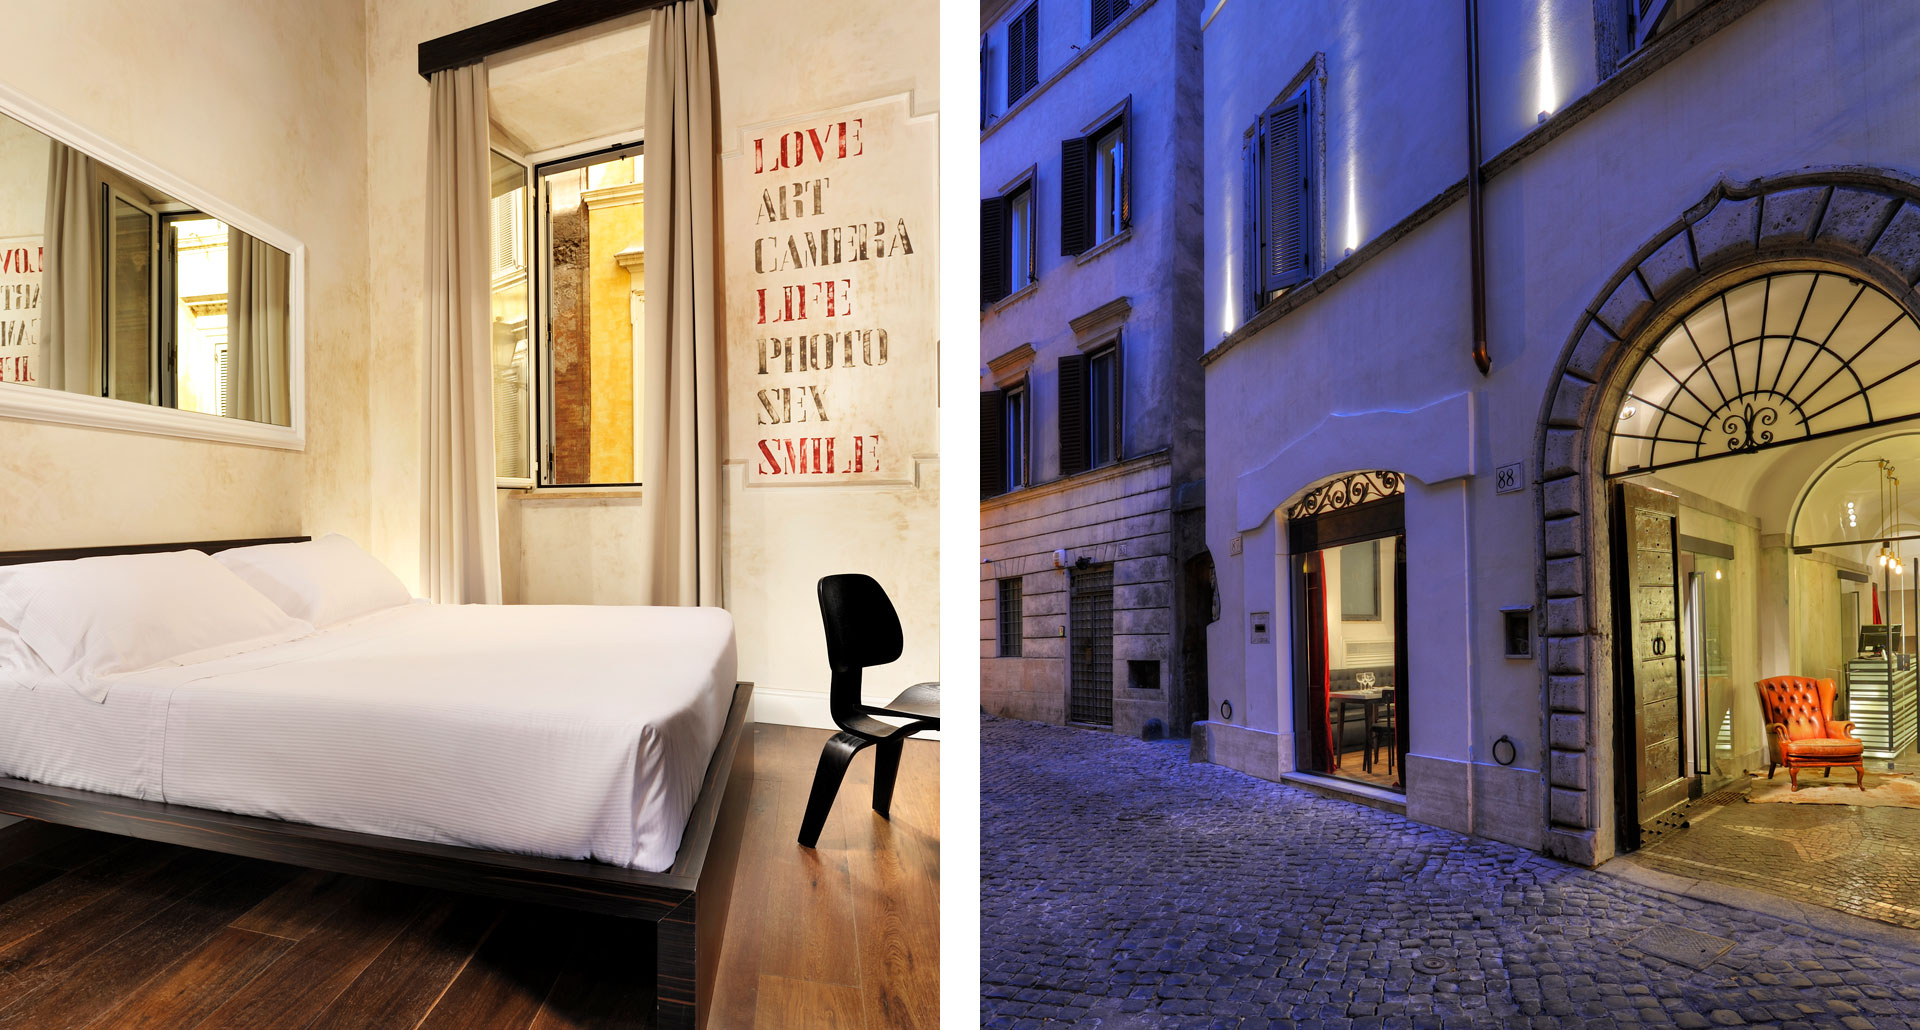 Relais Orso - boutique hotel in Rome